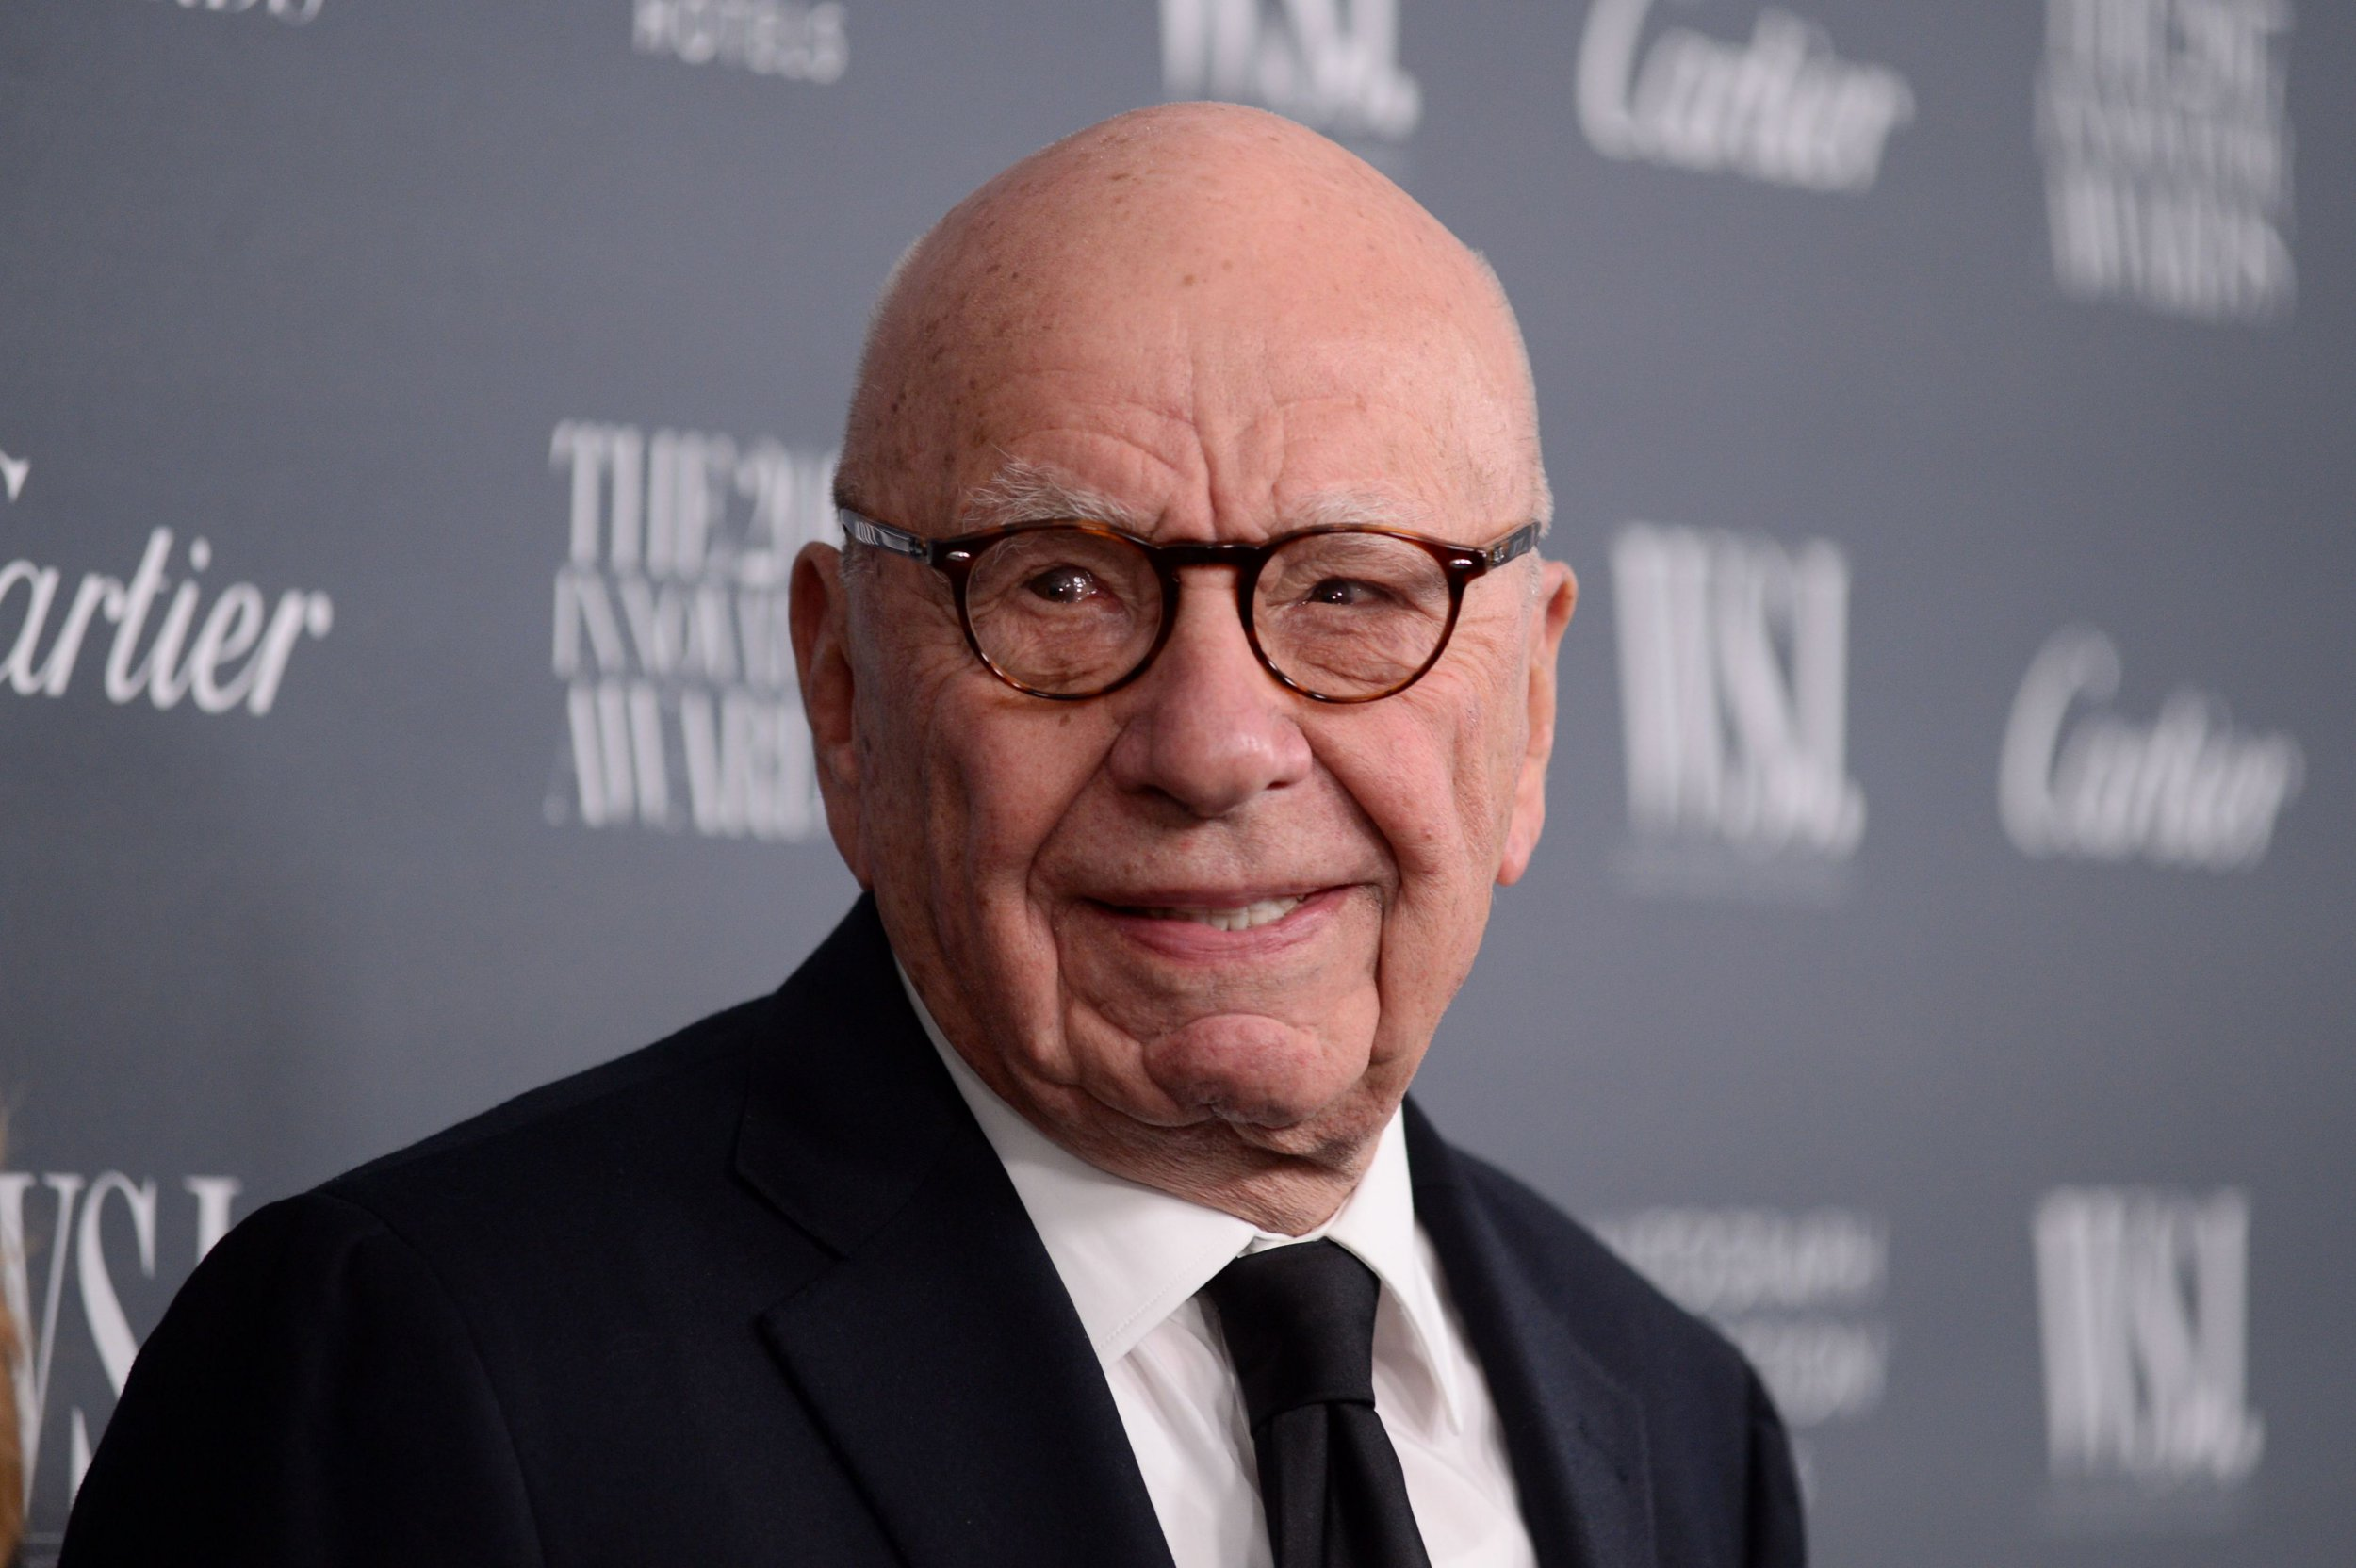 Rupert Murdoch net worth, age and how many times has he been married?